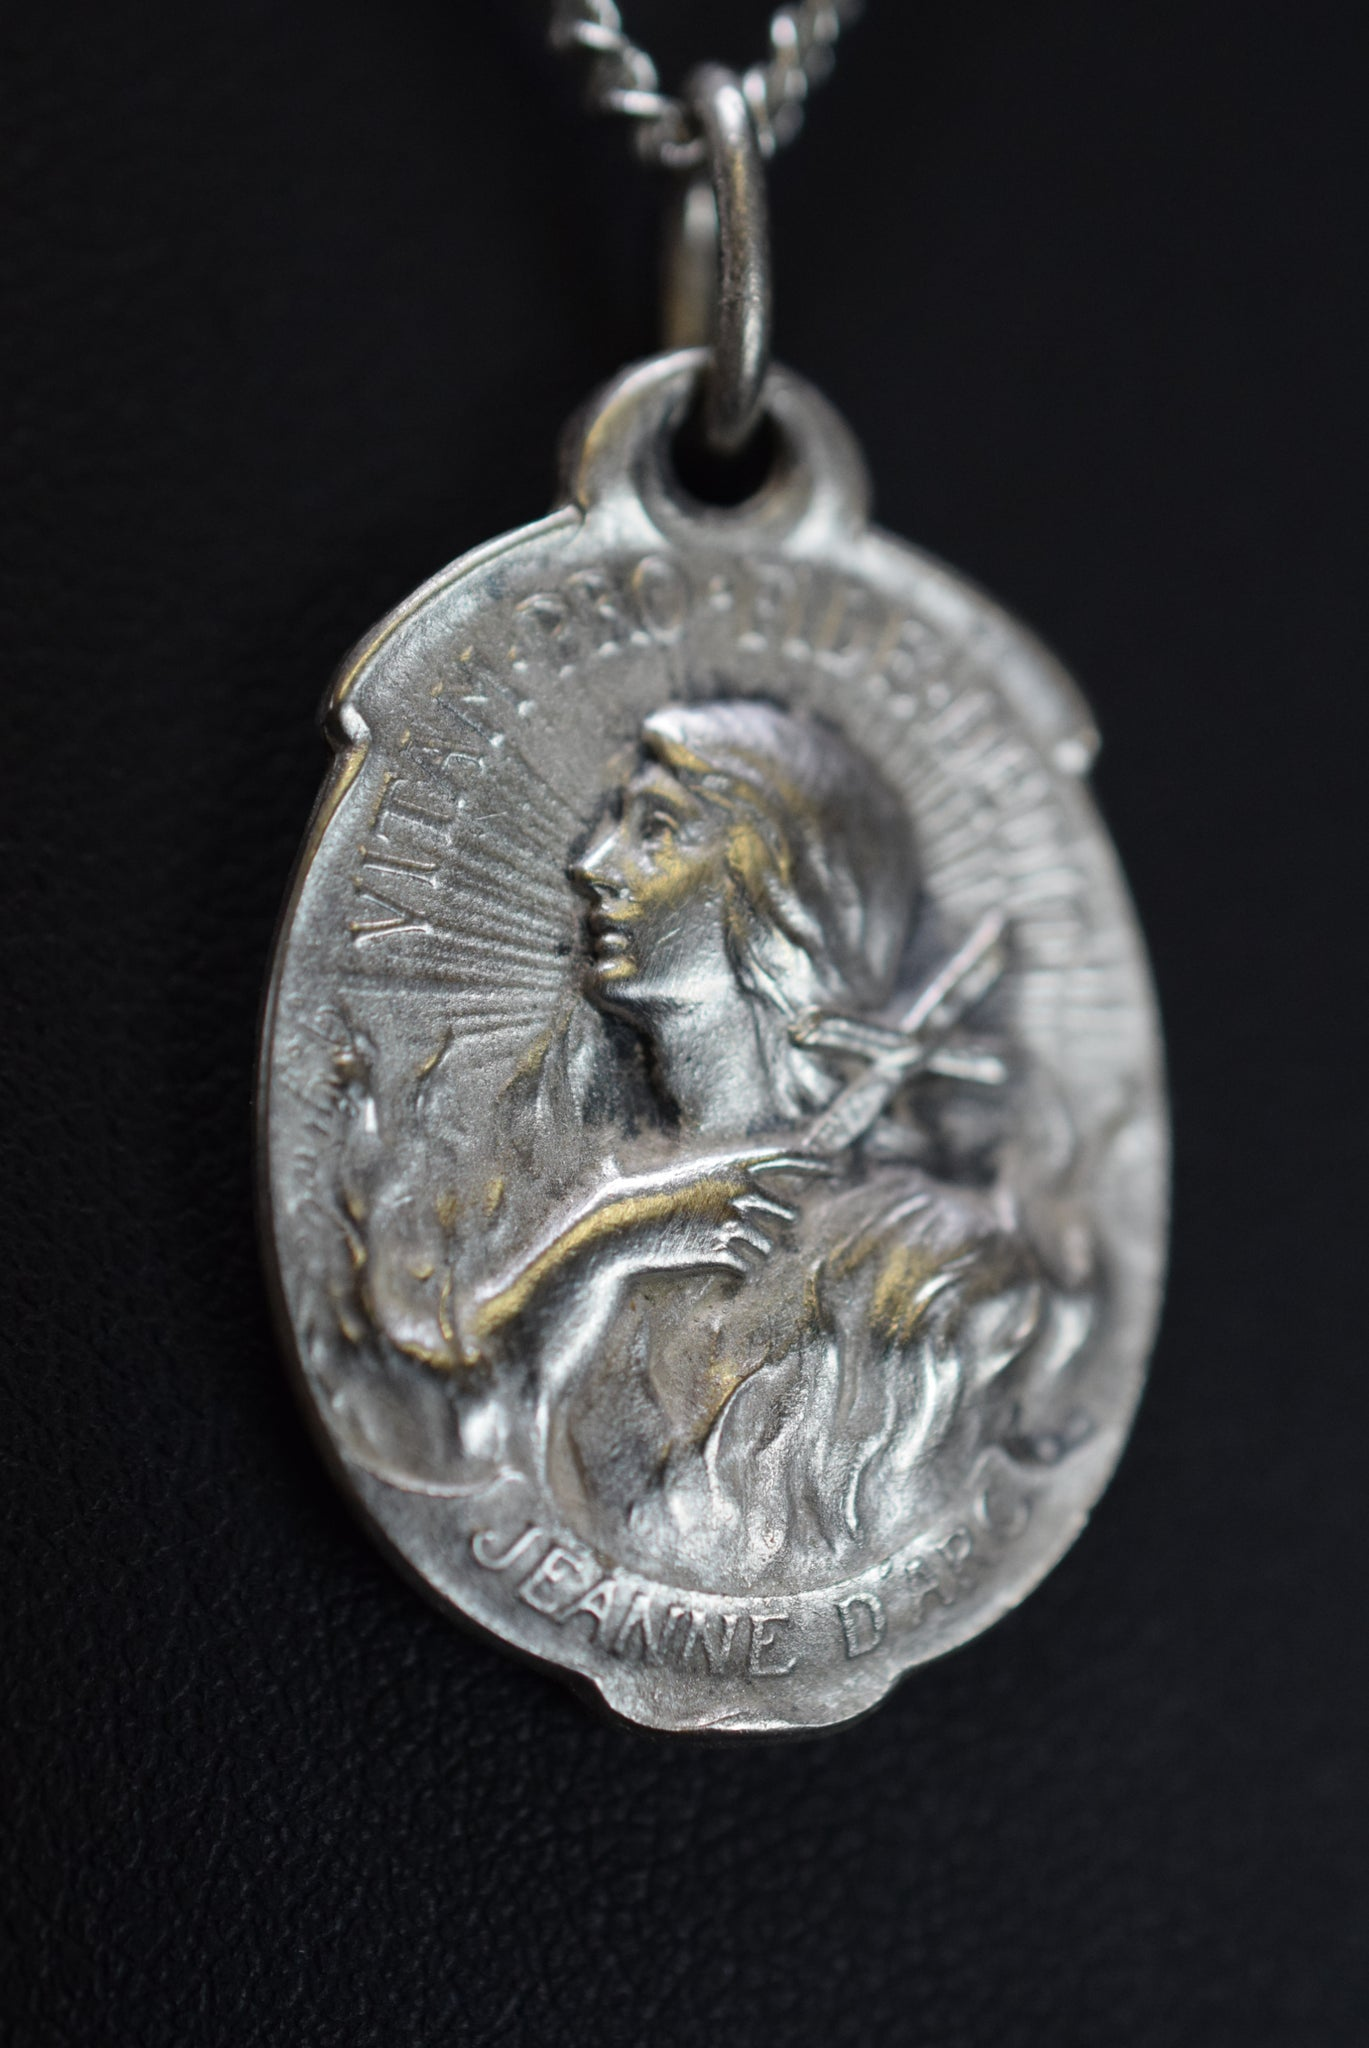 Saint Joan of Arc at the Stake Medal